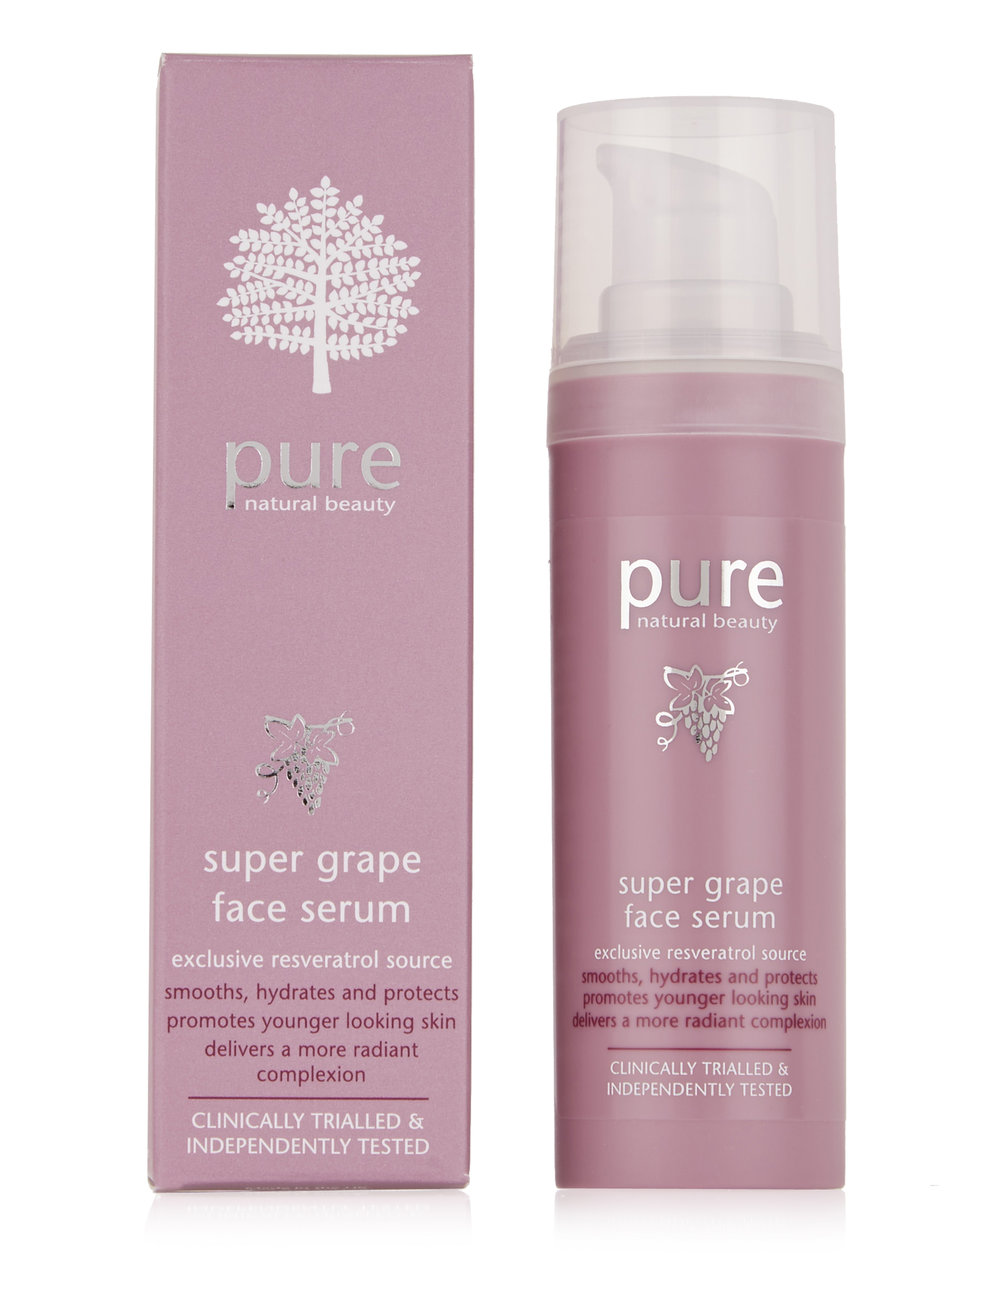 Pure%20Super%20Grape%20Face%20Serum%20(1).jpg